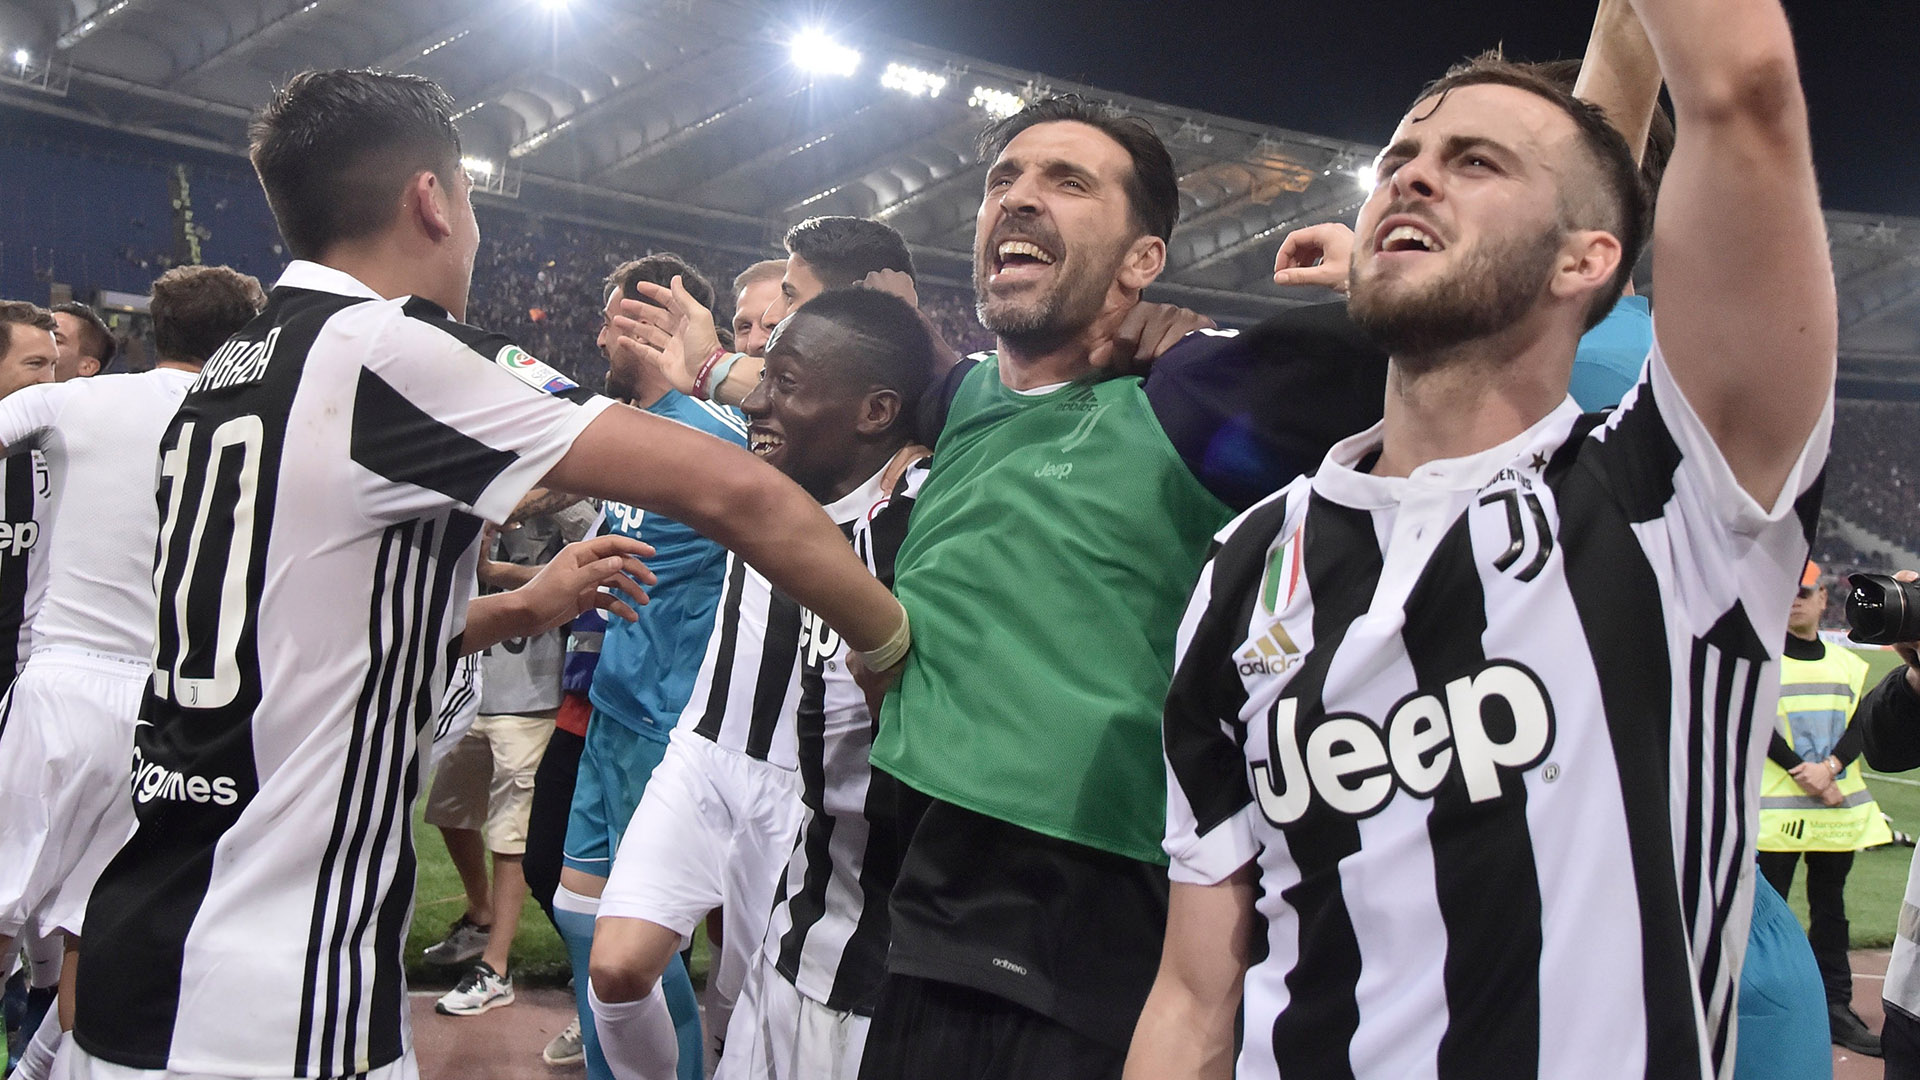 Gigi Buffon Juventus celebrating Scudetto